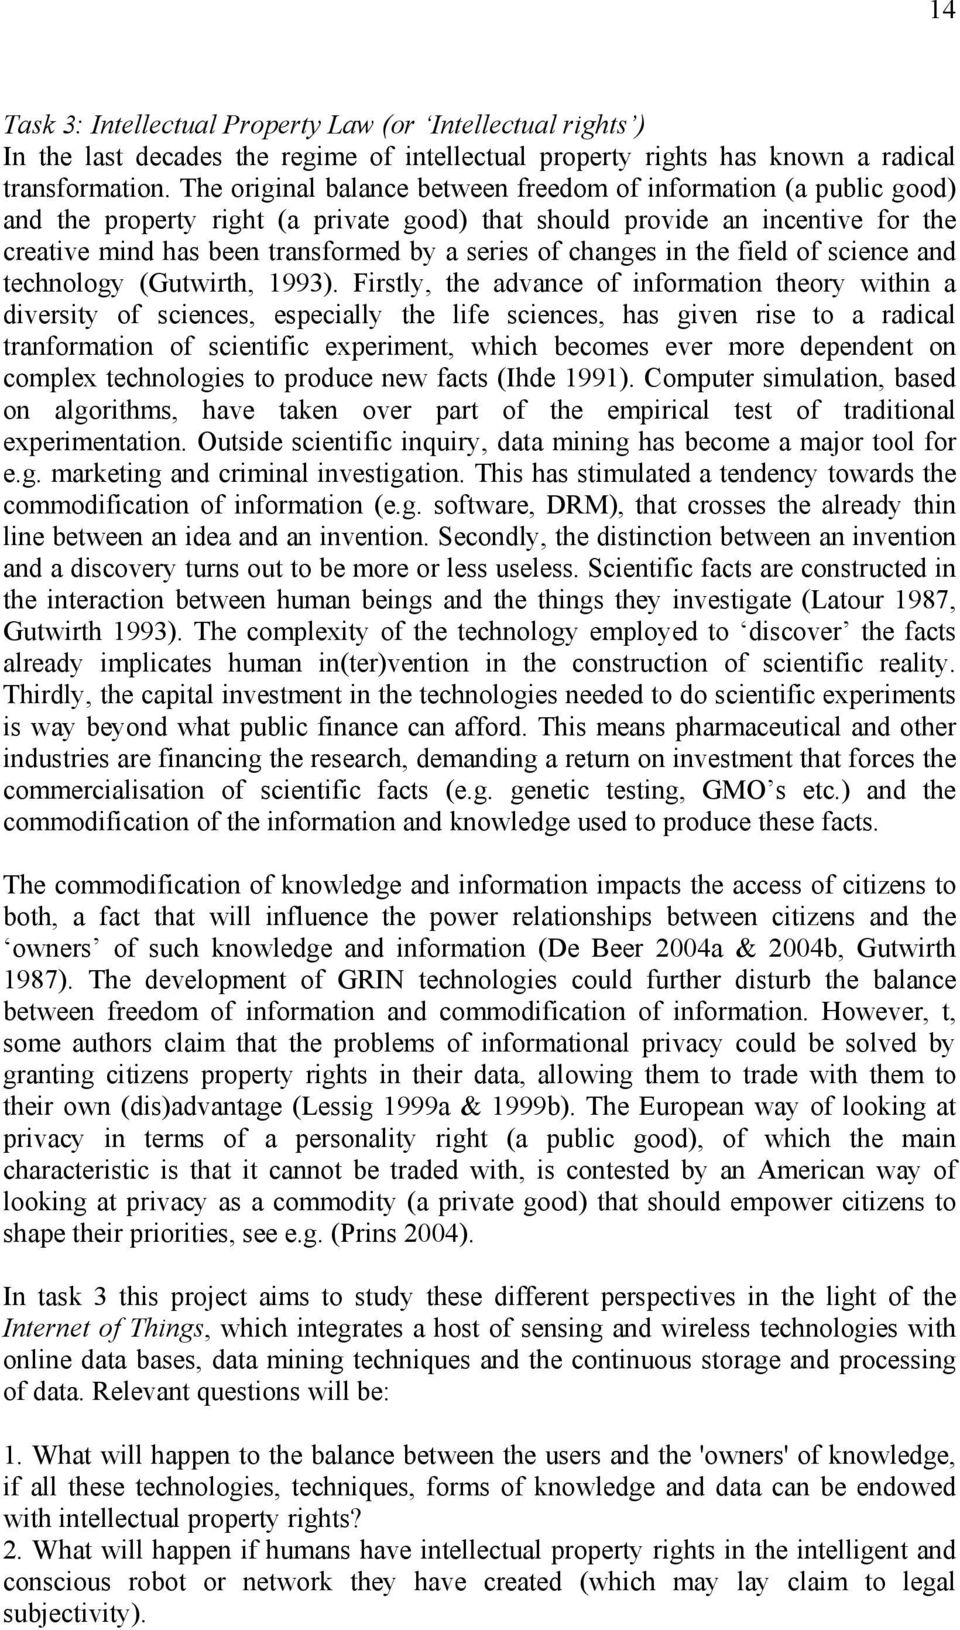 changes in the field of science and technology (Gutwirth, 1993).